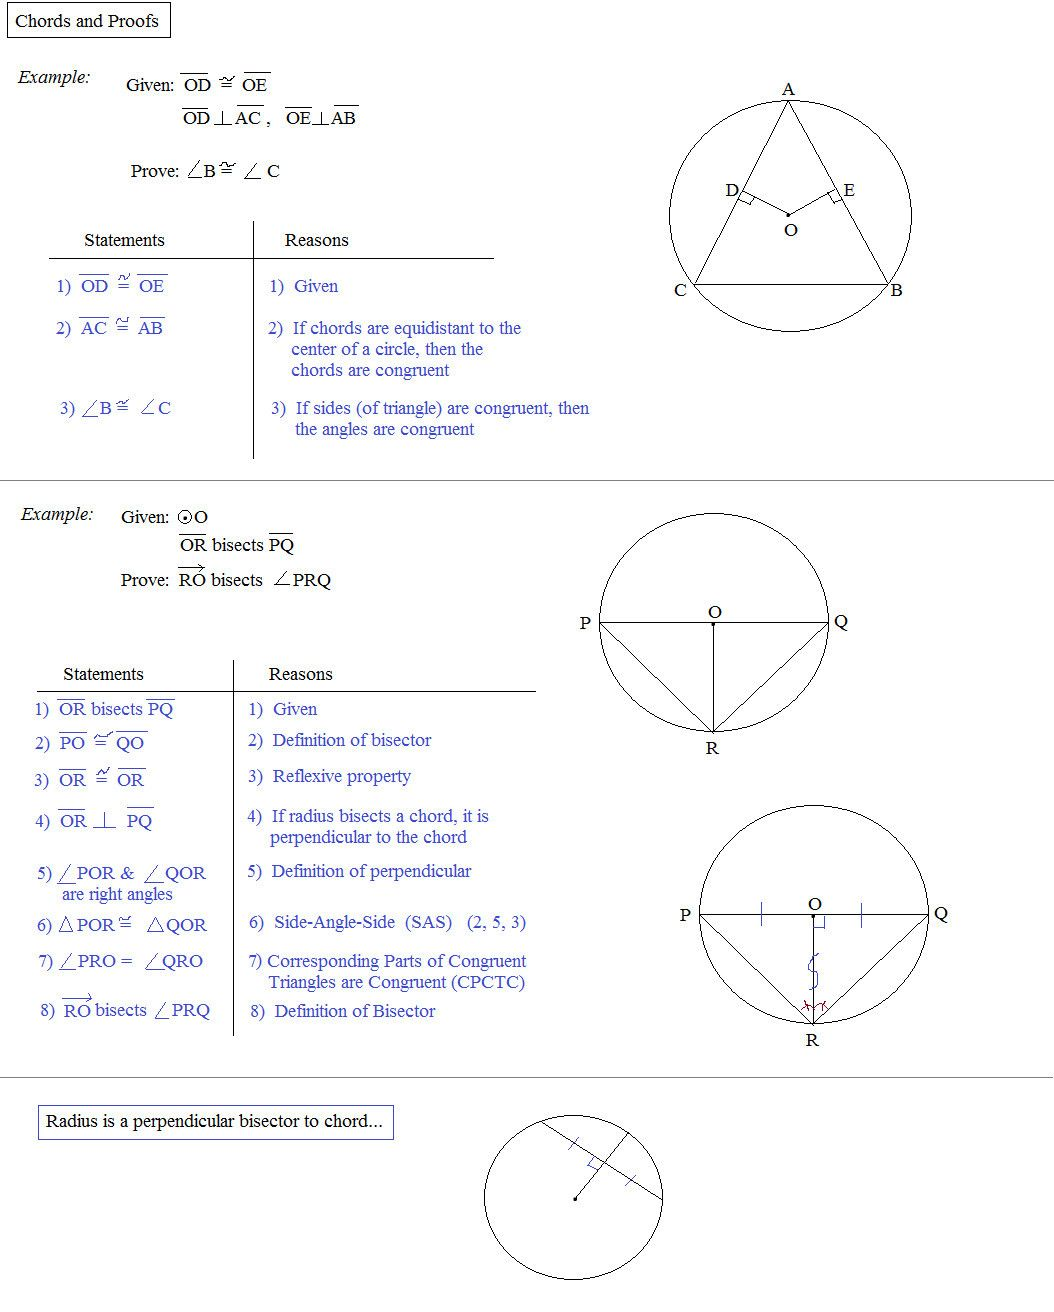 Triangle Congruence Worksheet 2 Answer Key